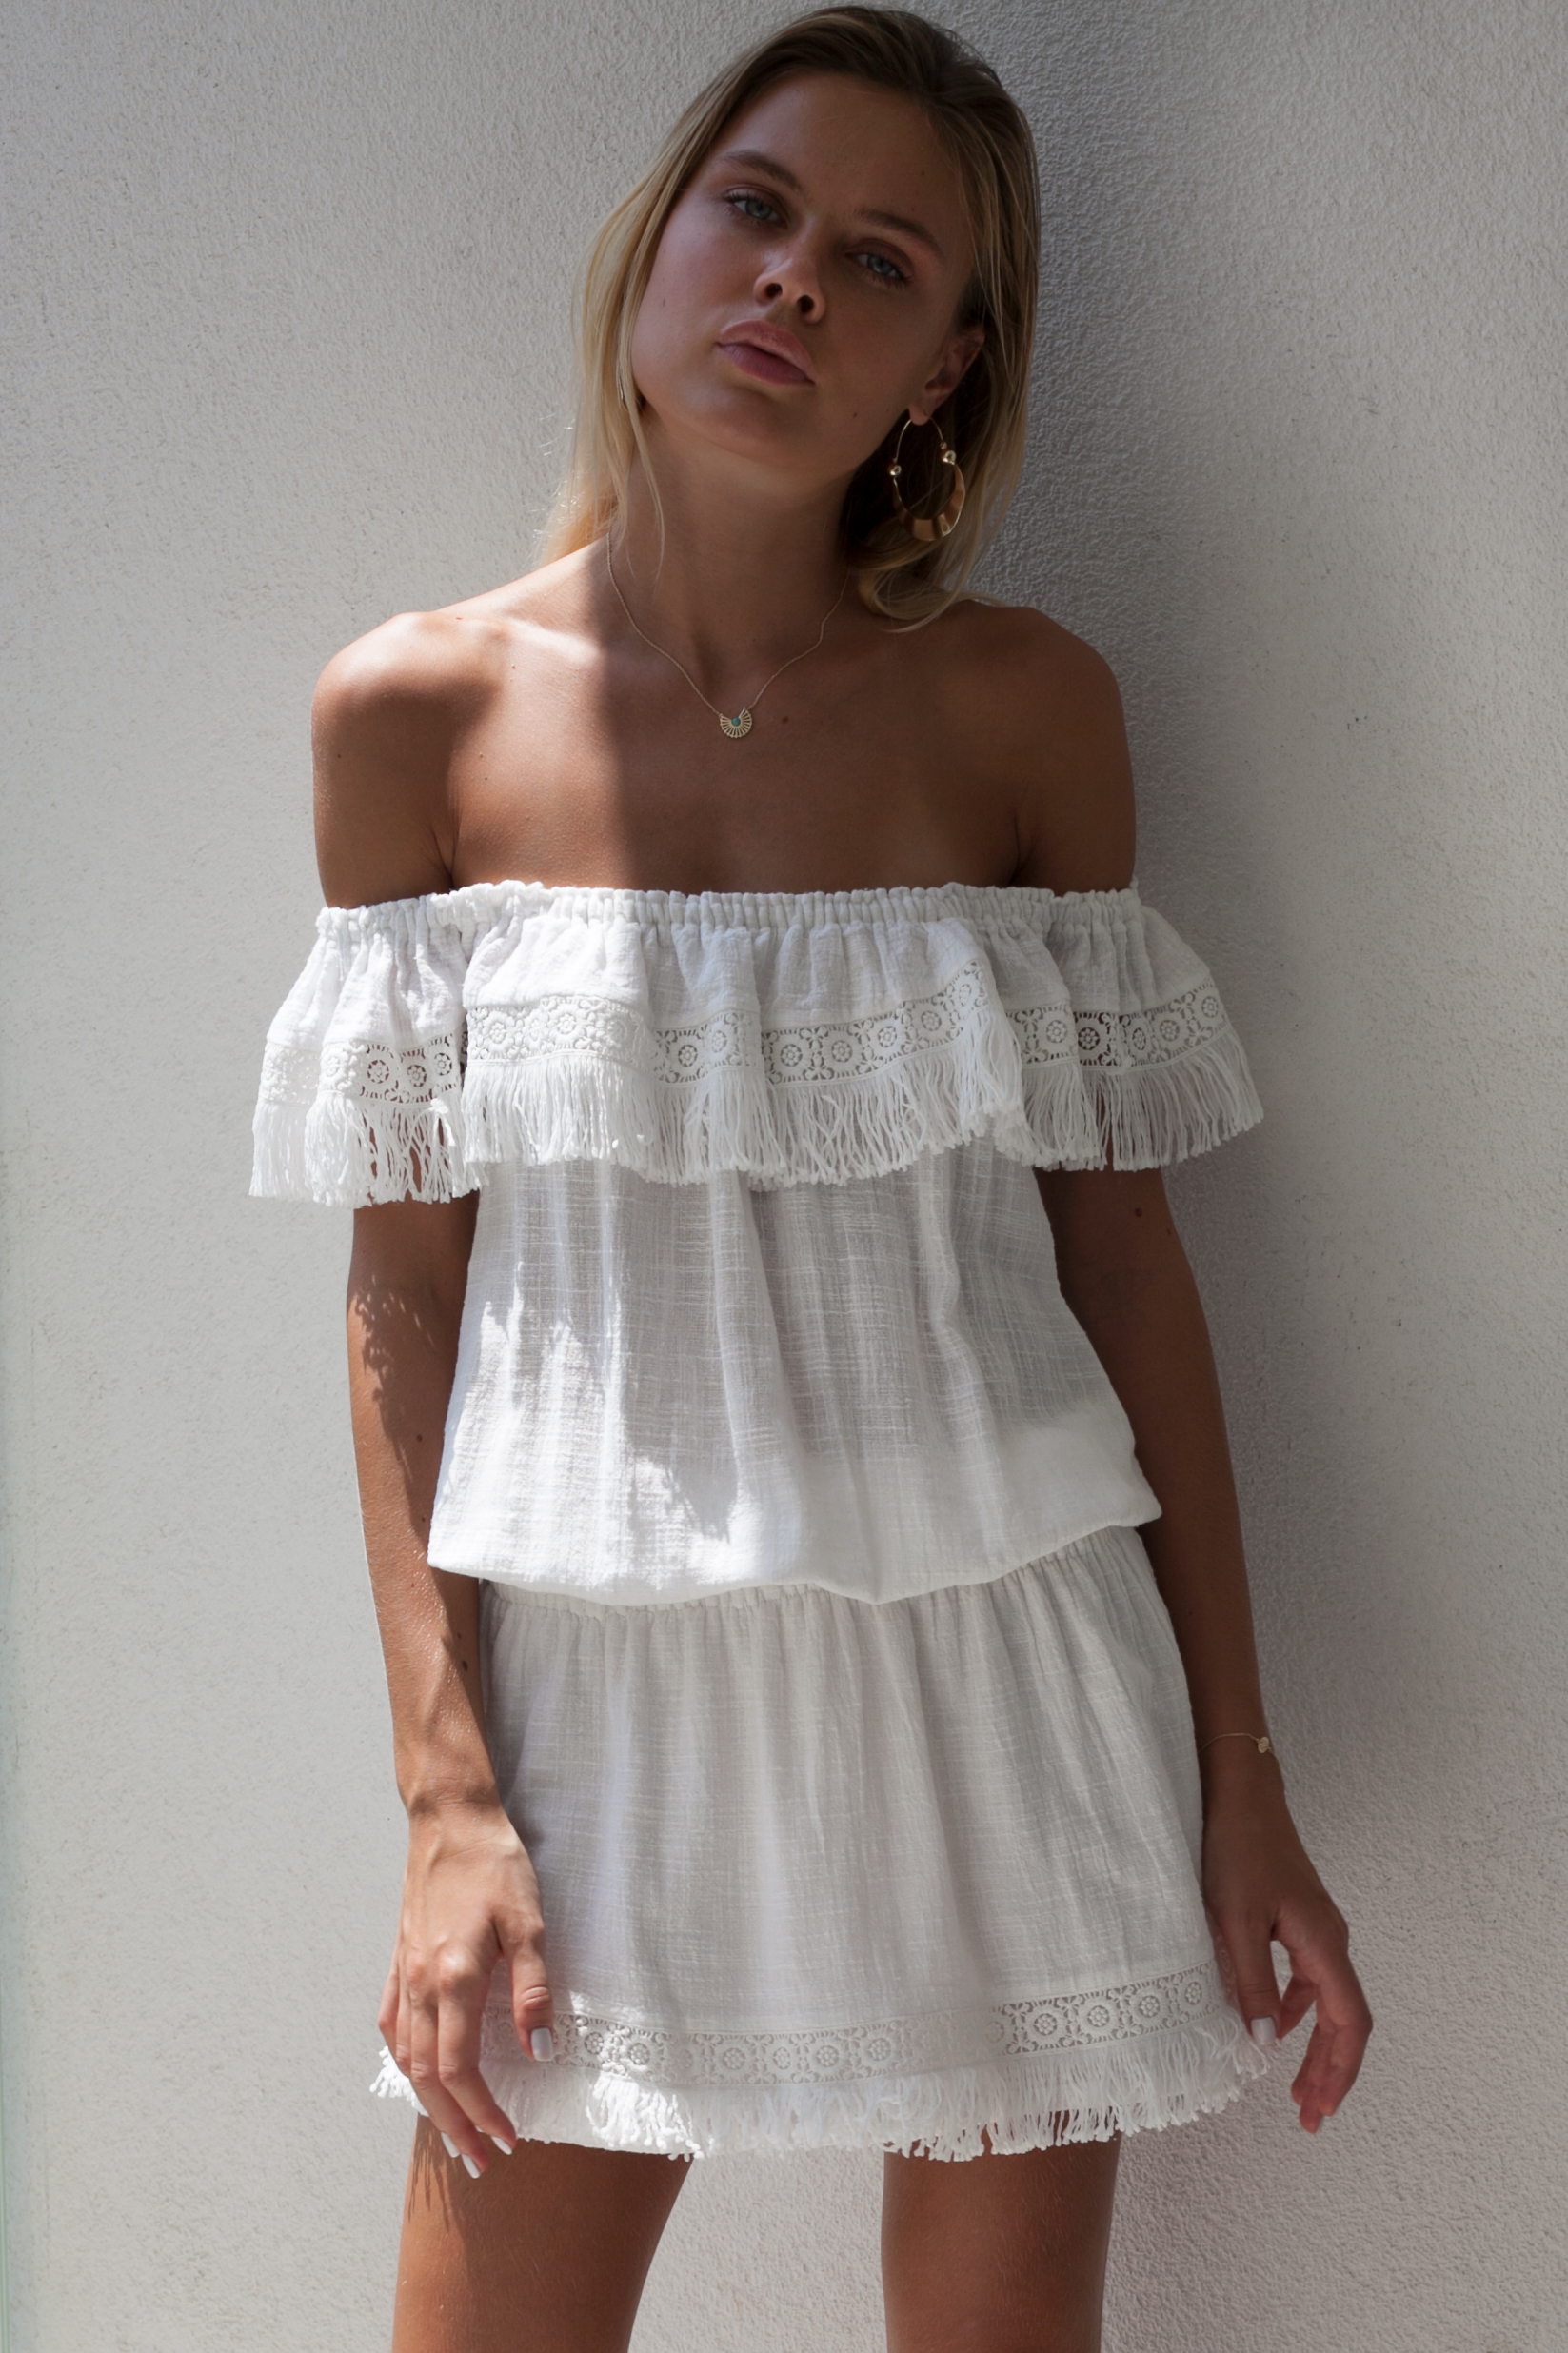 8b2ce6c675 Nina Cheesecloth Bohemian White Dress Off the Shoulder Summer Boho Cotton  Dress